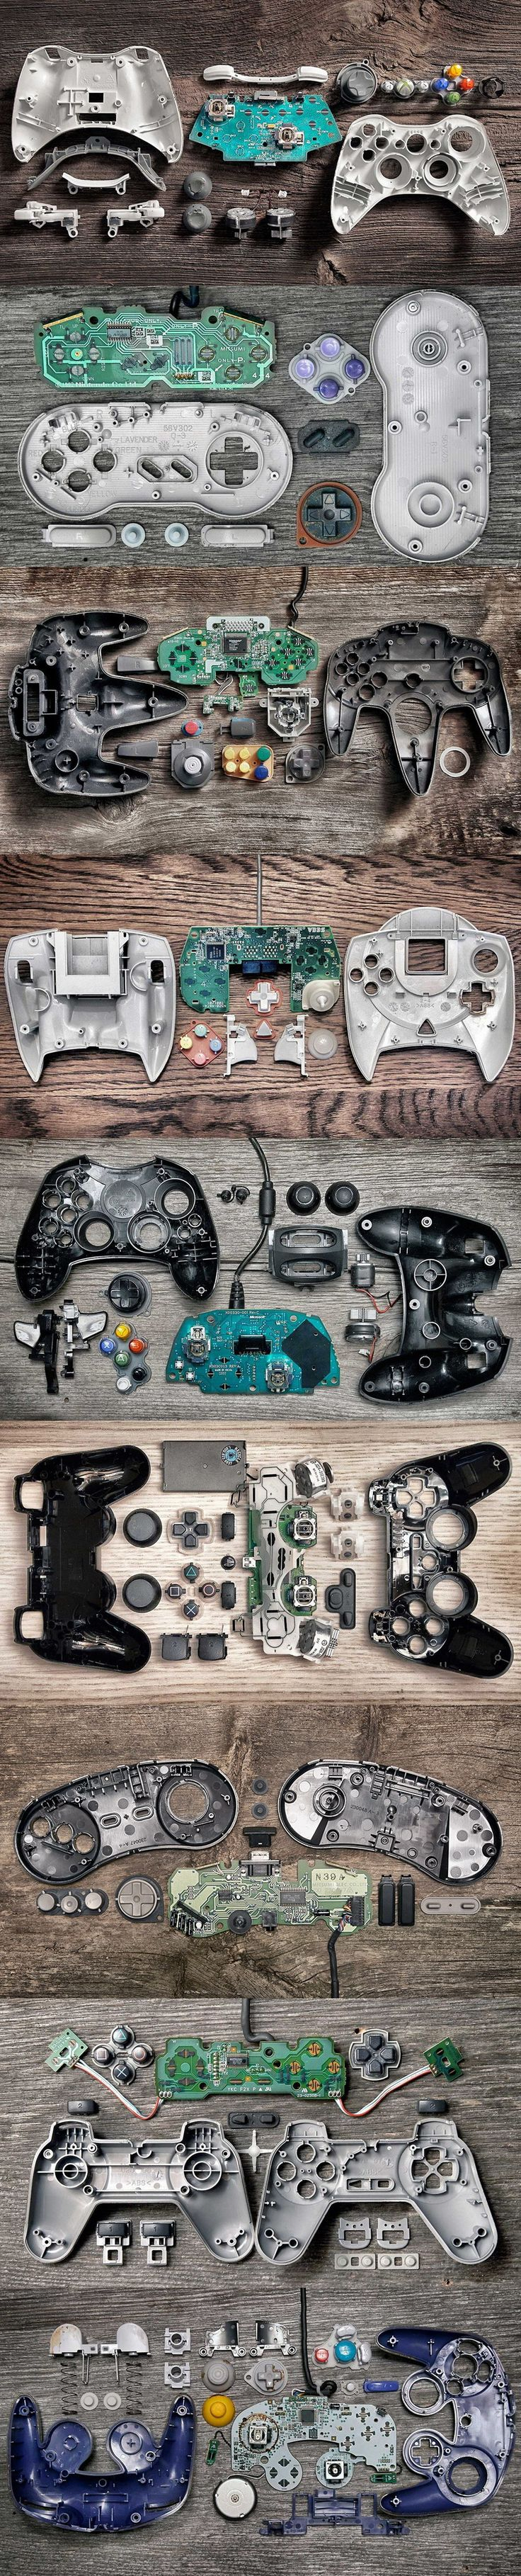 Anatomy Of Controllers By Brandon Allen Could make this and put a glass top on the table in a bar to make a cool table...